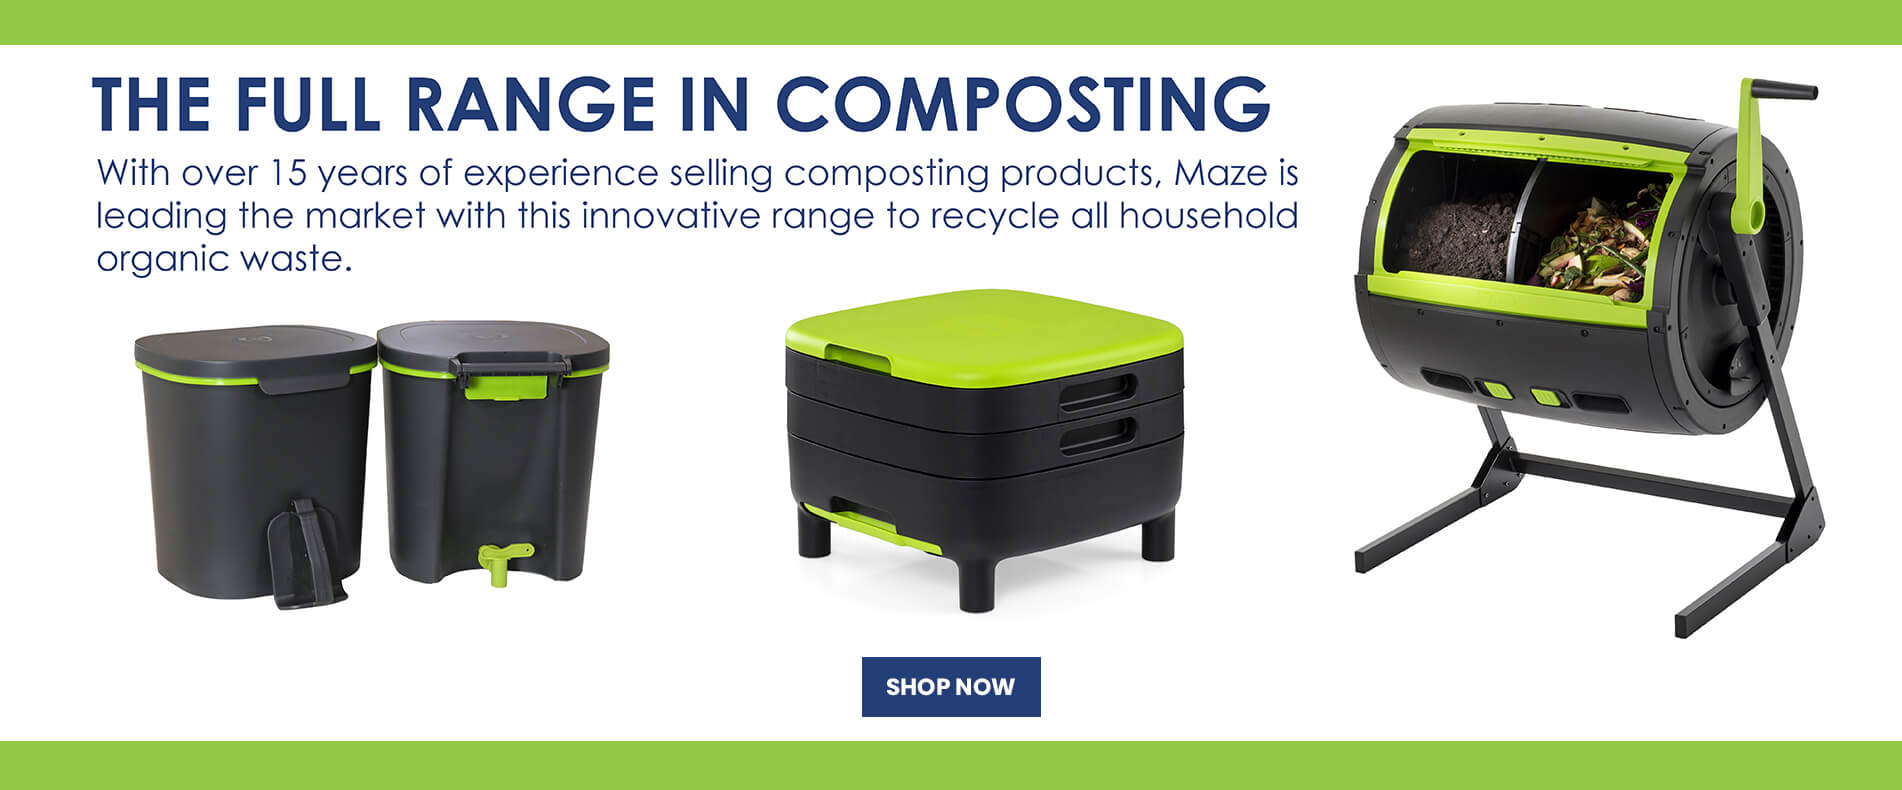 Composting Products Range